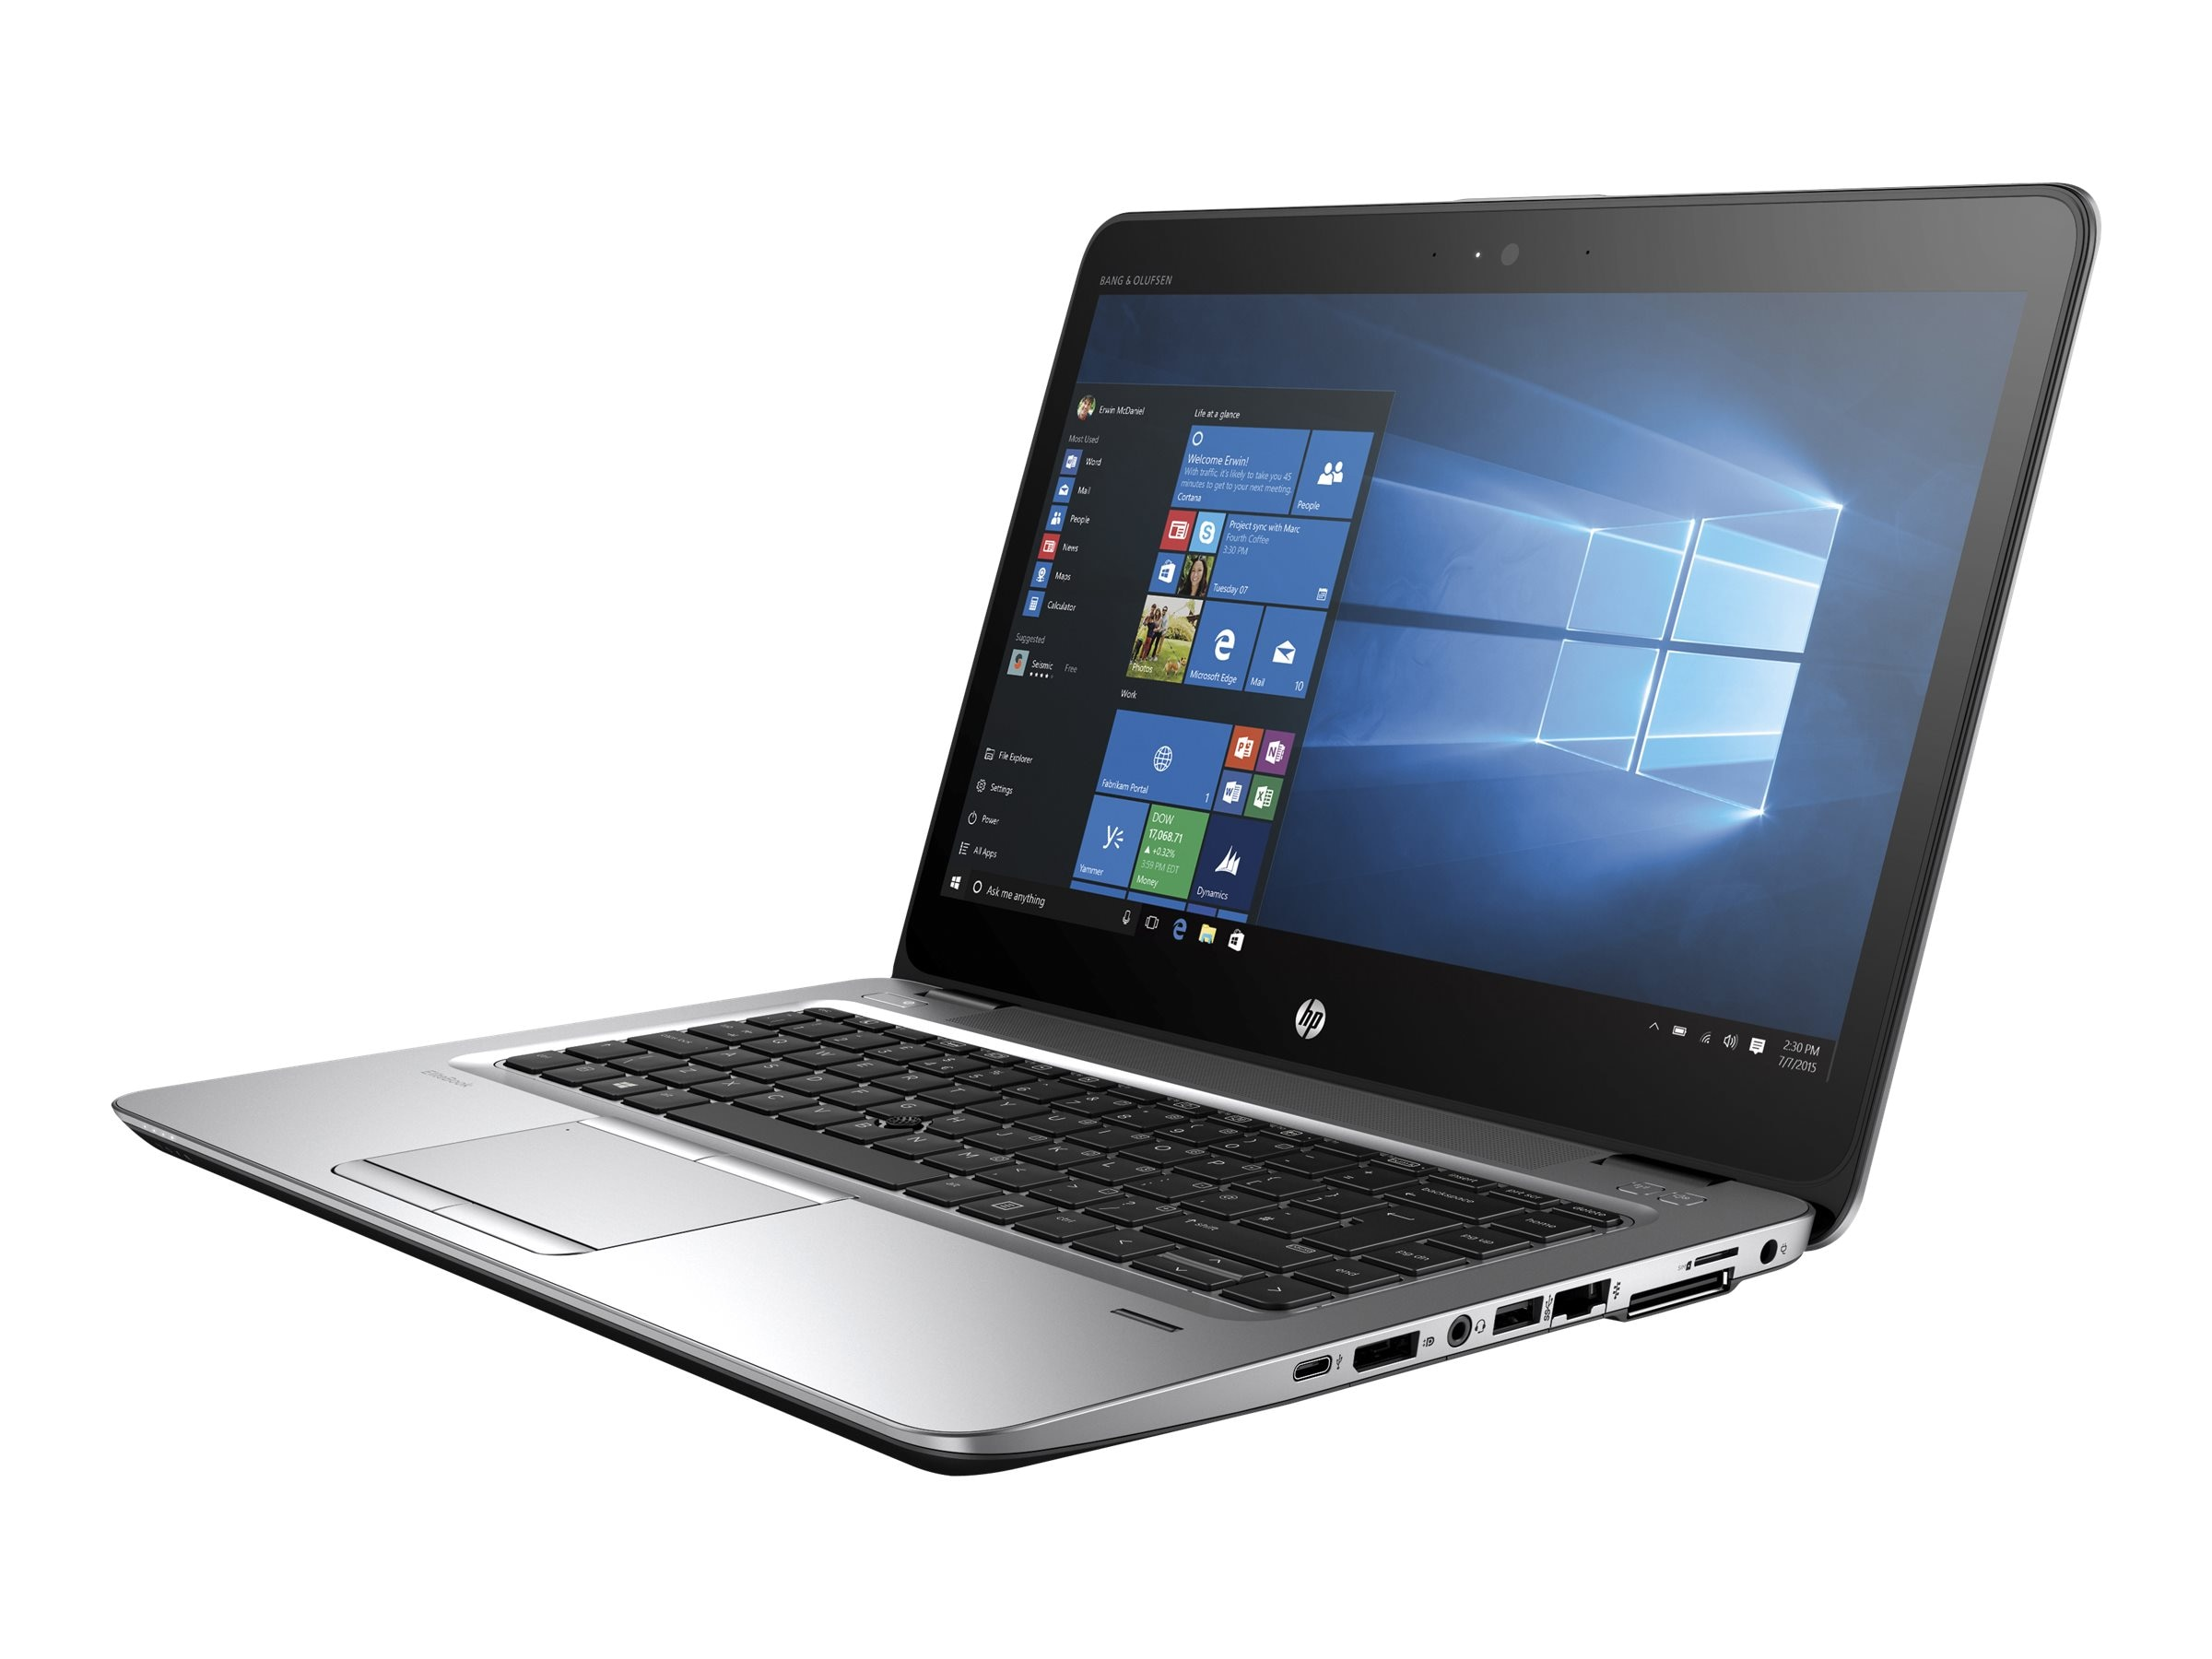 HP Smart Buy EliteBook 745 G3 1.8GHz A10 Series 14in display, T3L34UT#ABA, 30706485, Notebooks